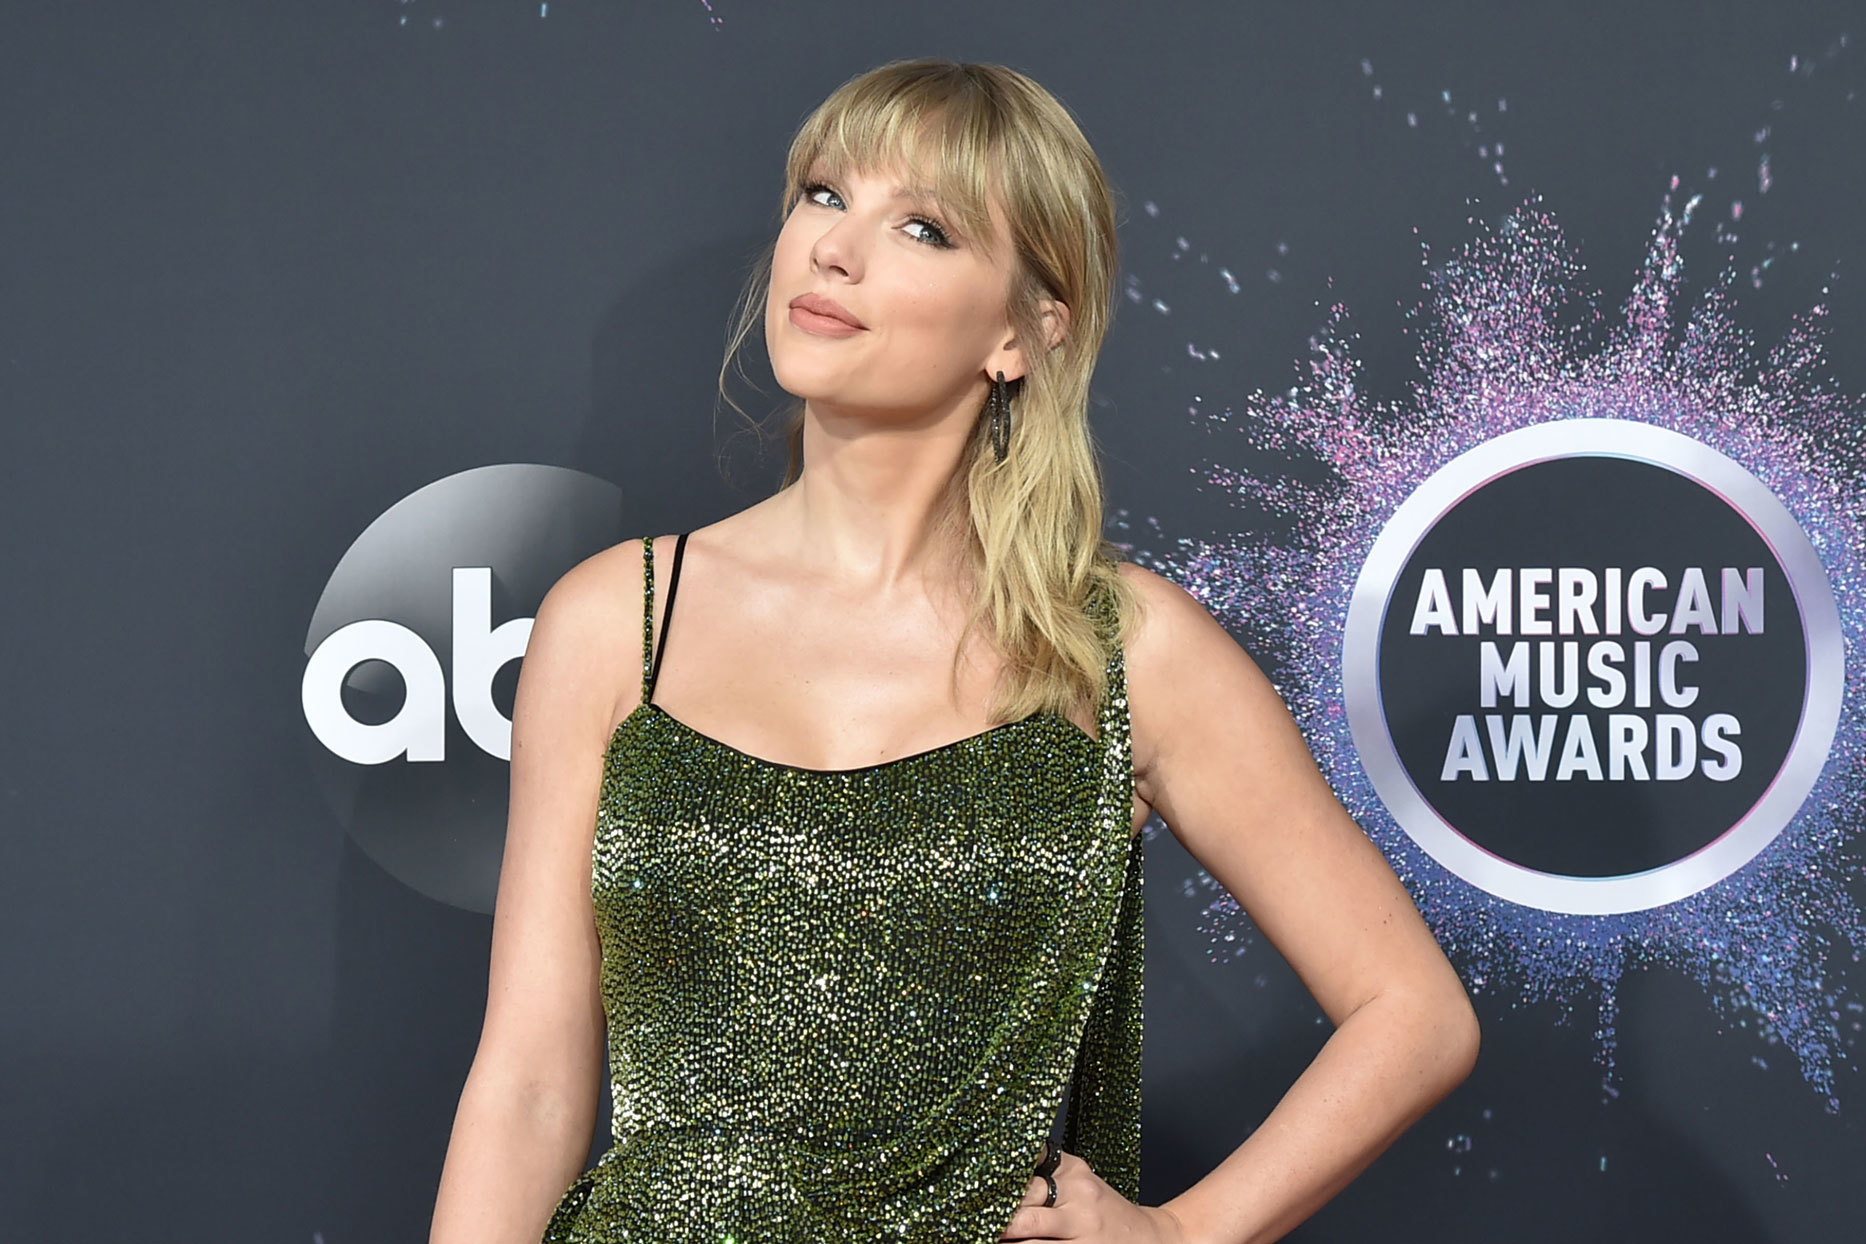 Everyone Needs to Hear Taylor Swift's Words on Body Positivity